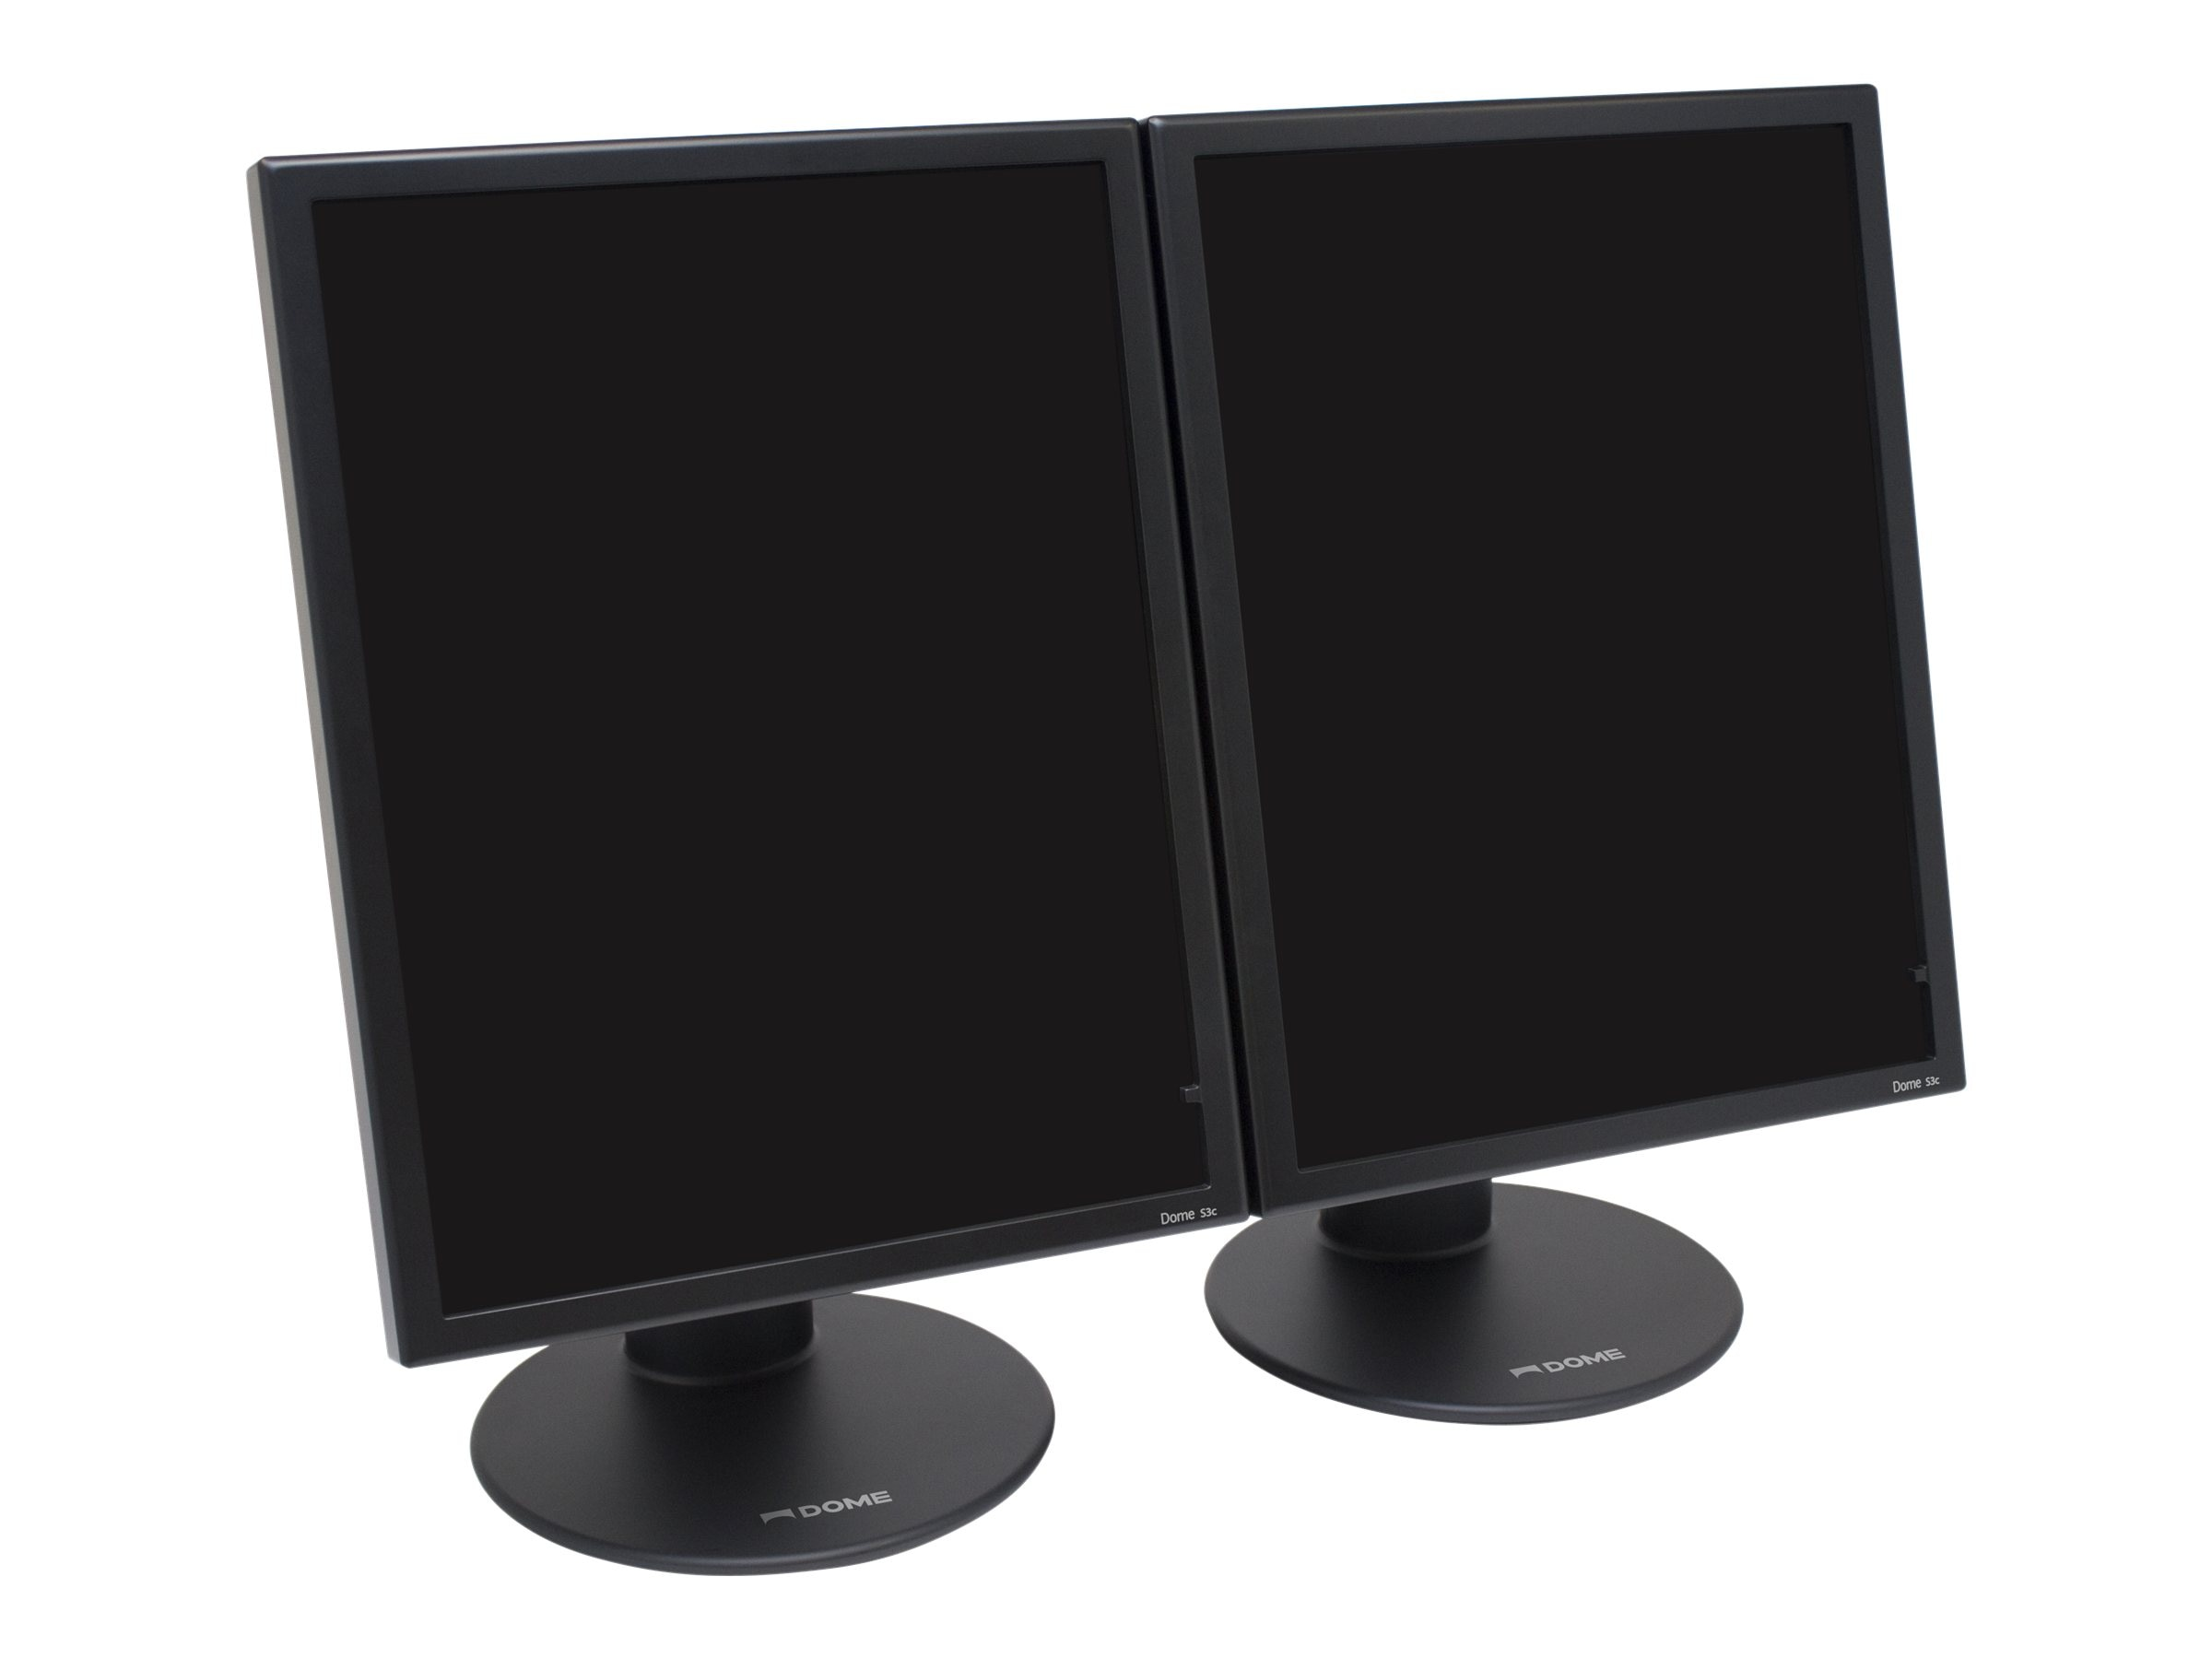 NDS 21.3 Dome S3c Dual-Head Color Display, No Video Card, 997-5803-00-2NN, 13081583, Monitors - Medical